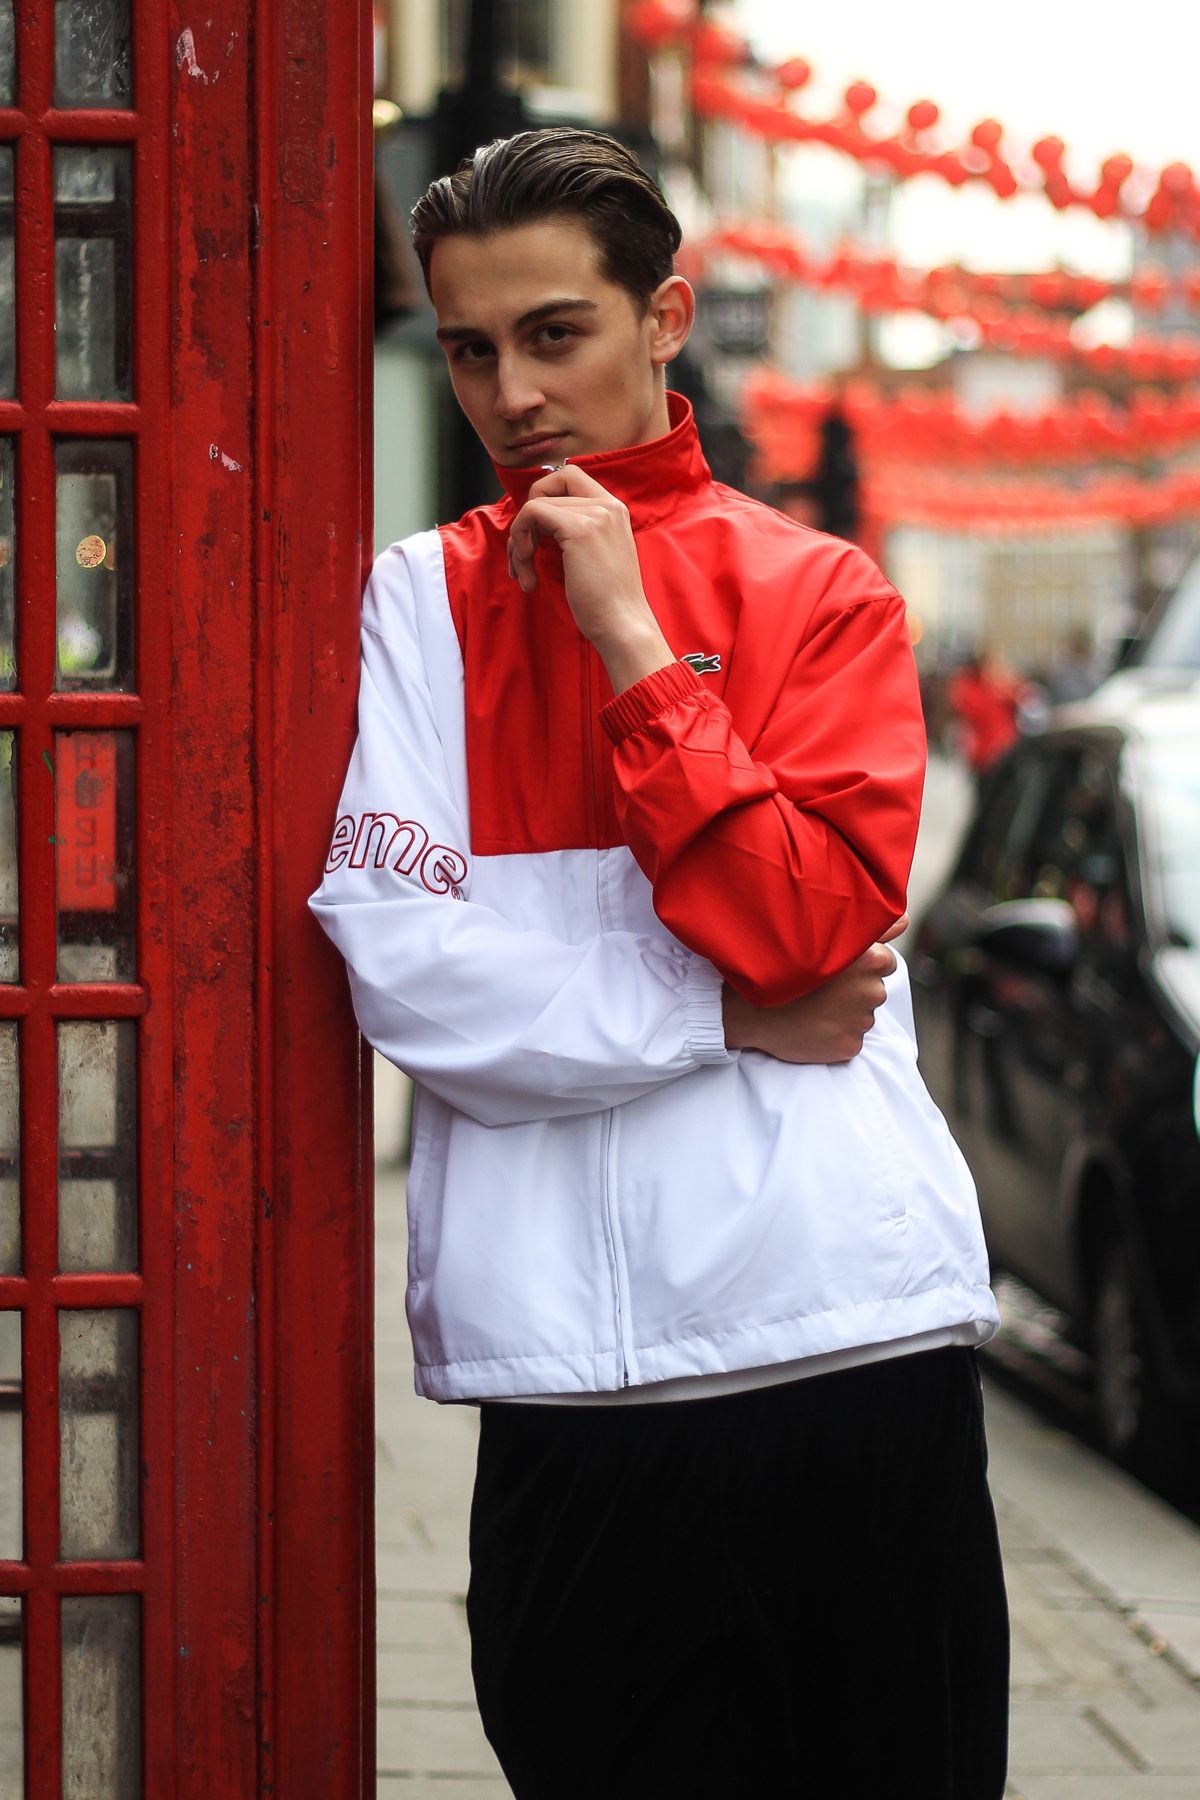 Lacoste x Supreme Red Jacket